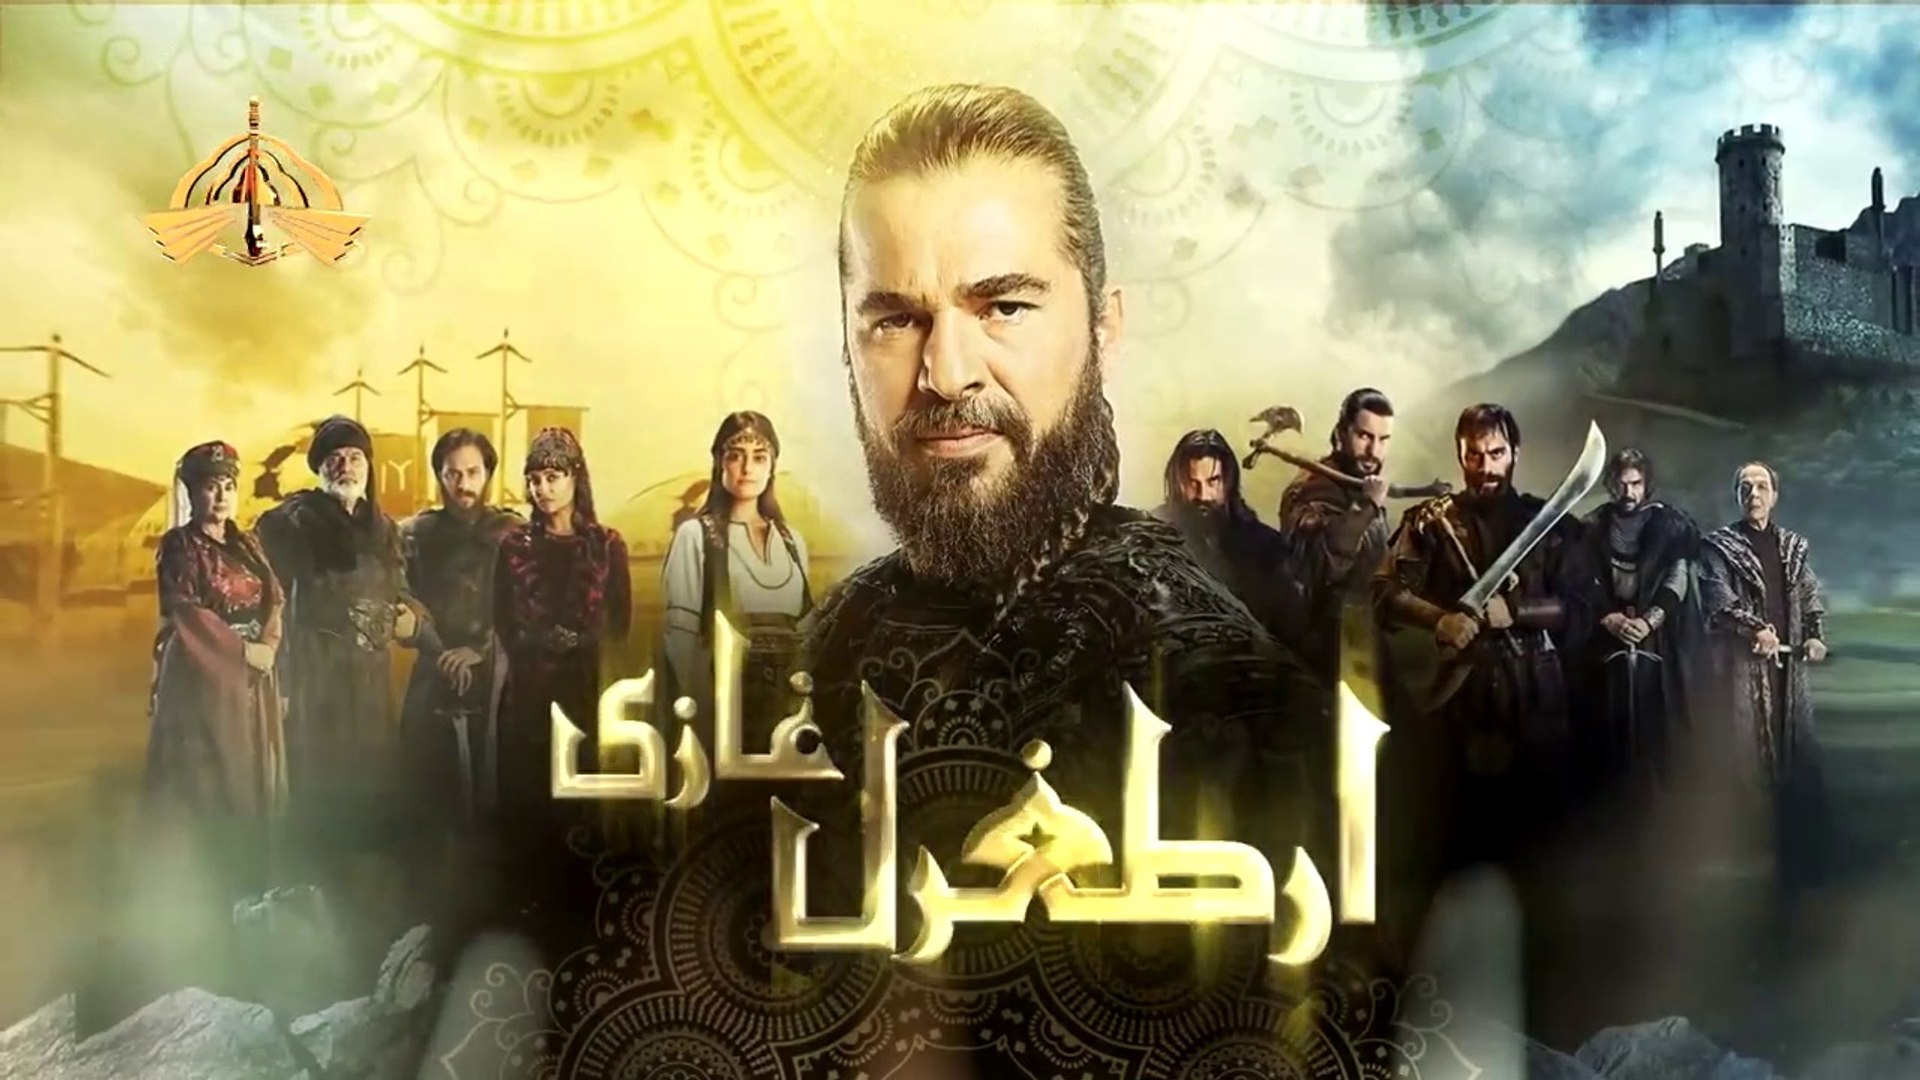 Ertugrul Ghazi Episode 1 Urdu Dubbed Famous Turkish Drama Serial Only On Ptv Home Pakistan Television Limited Video Dailymotion